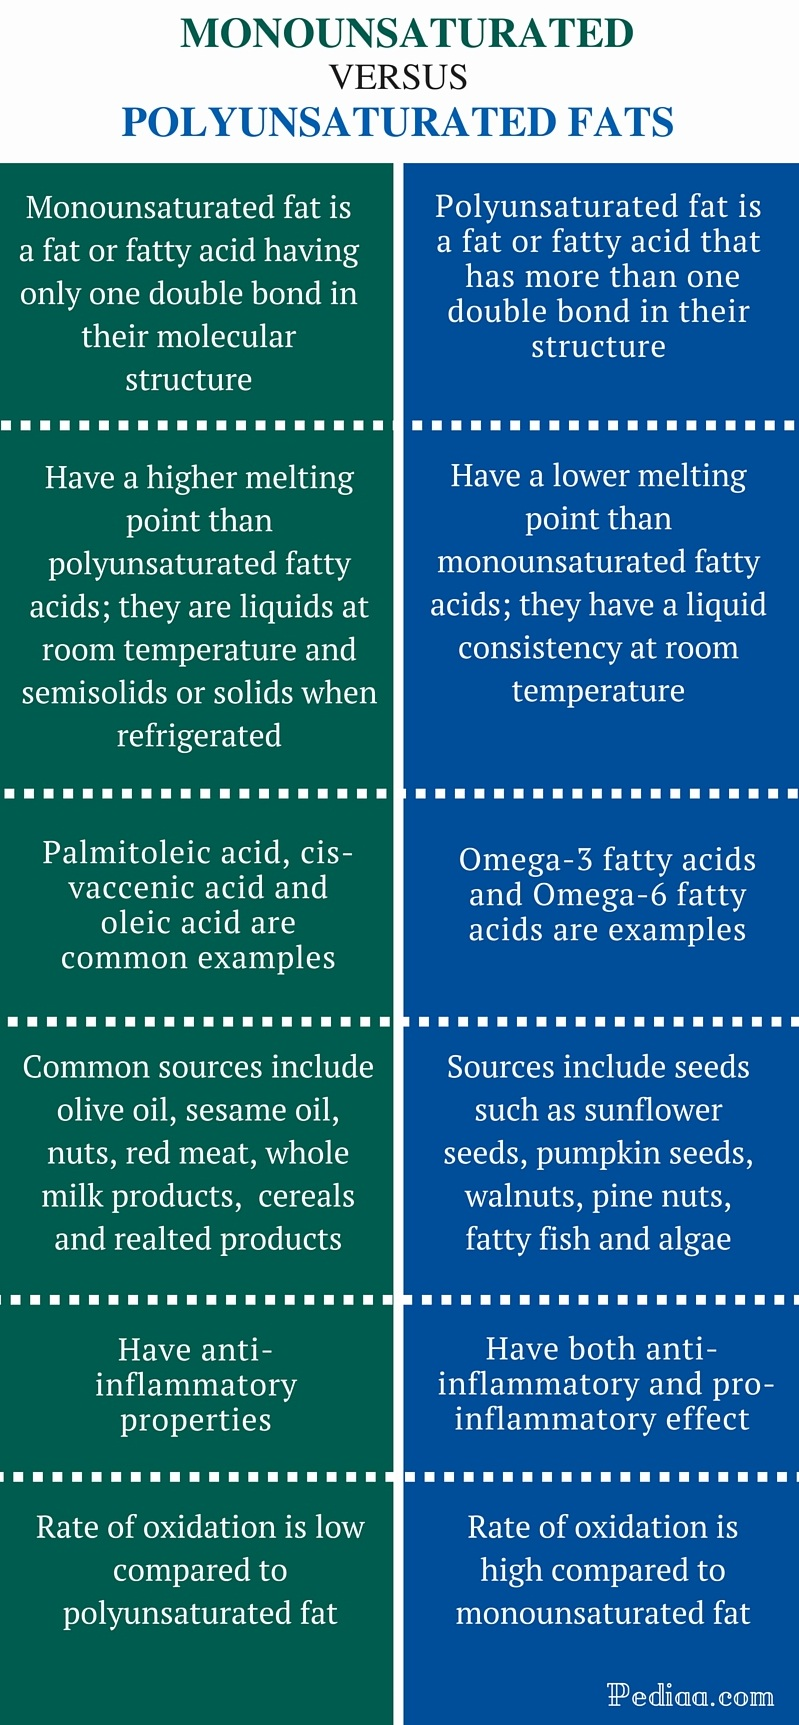 Difference Between Monounsaturated and Polyunsaturated Fats - infographic